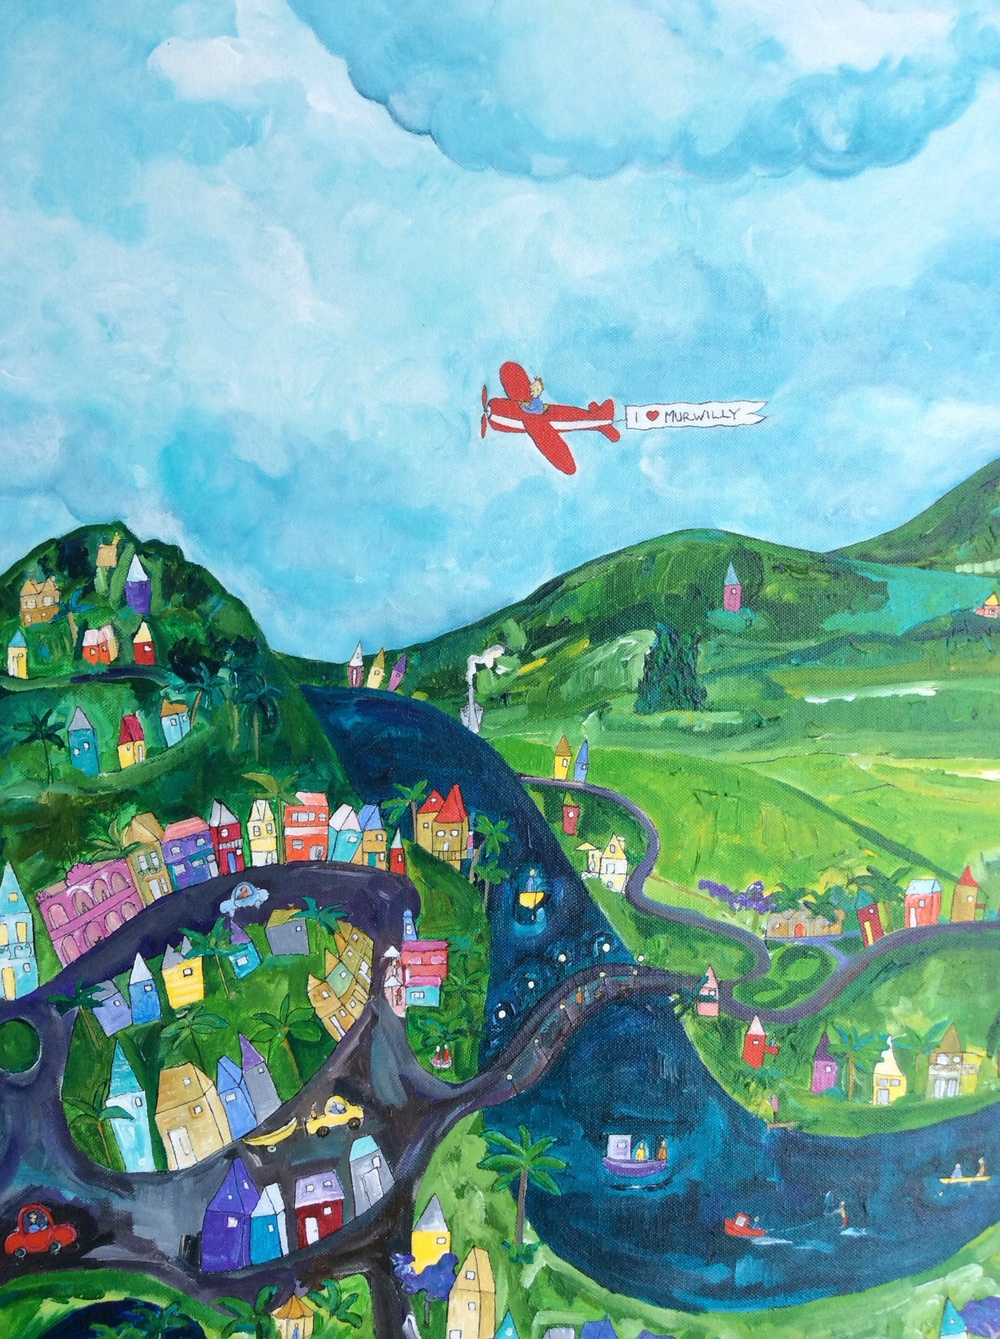 It's not a secret. I love Murwilly !!      My painting of Murwillumbah in all its beauty.